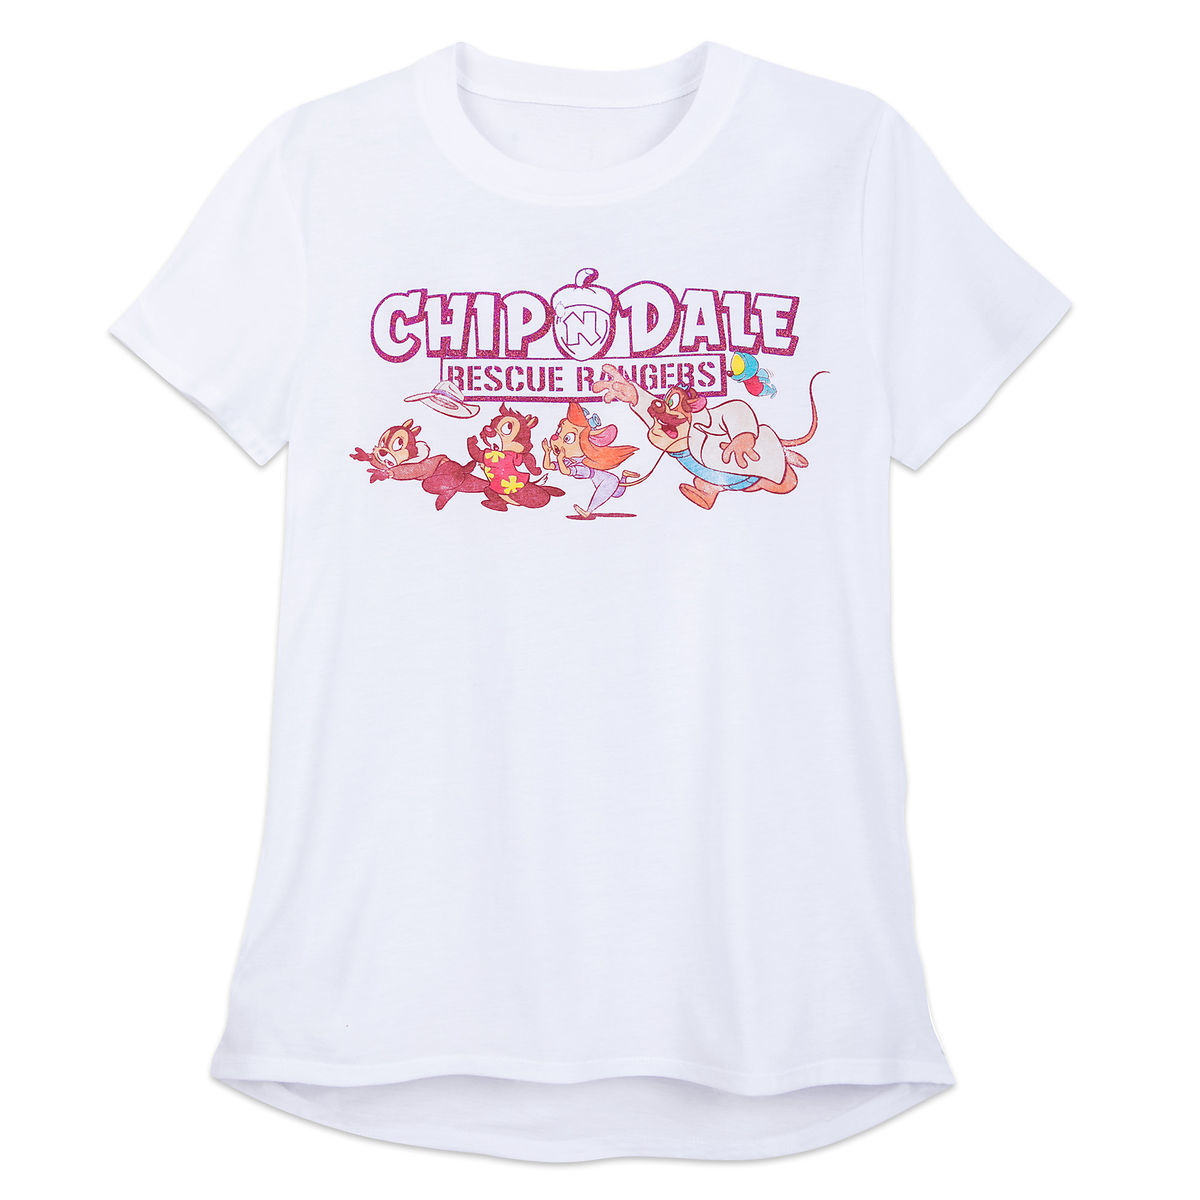 e54ba8053 Product Image of Chip 'n Dale Rescue Rangers T-Shirt for Women # 1